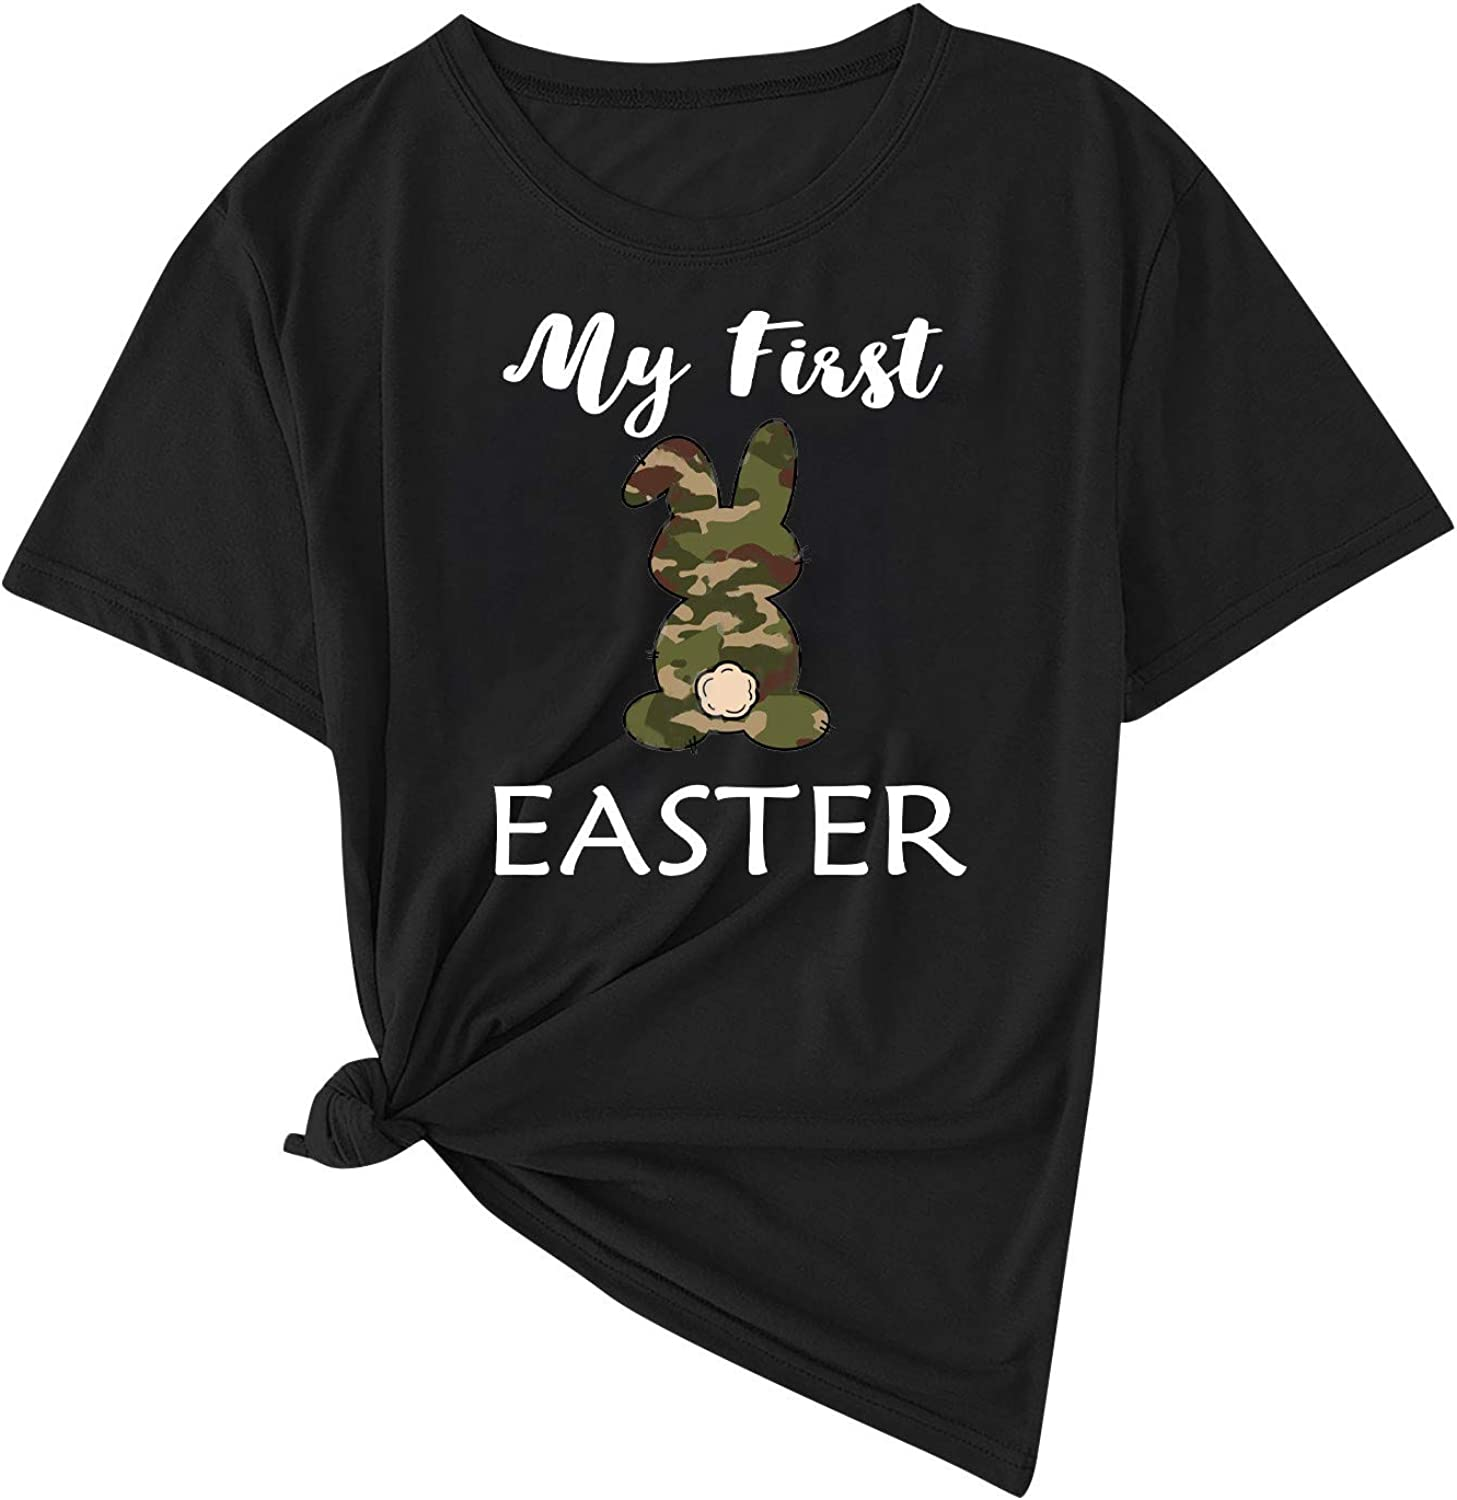 Women's Easter T-Shirt Leopard and Plaid Bunny Printed Tops Tee